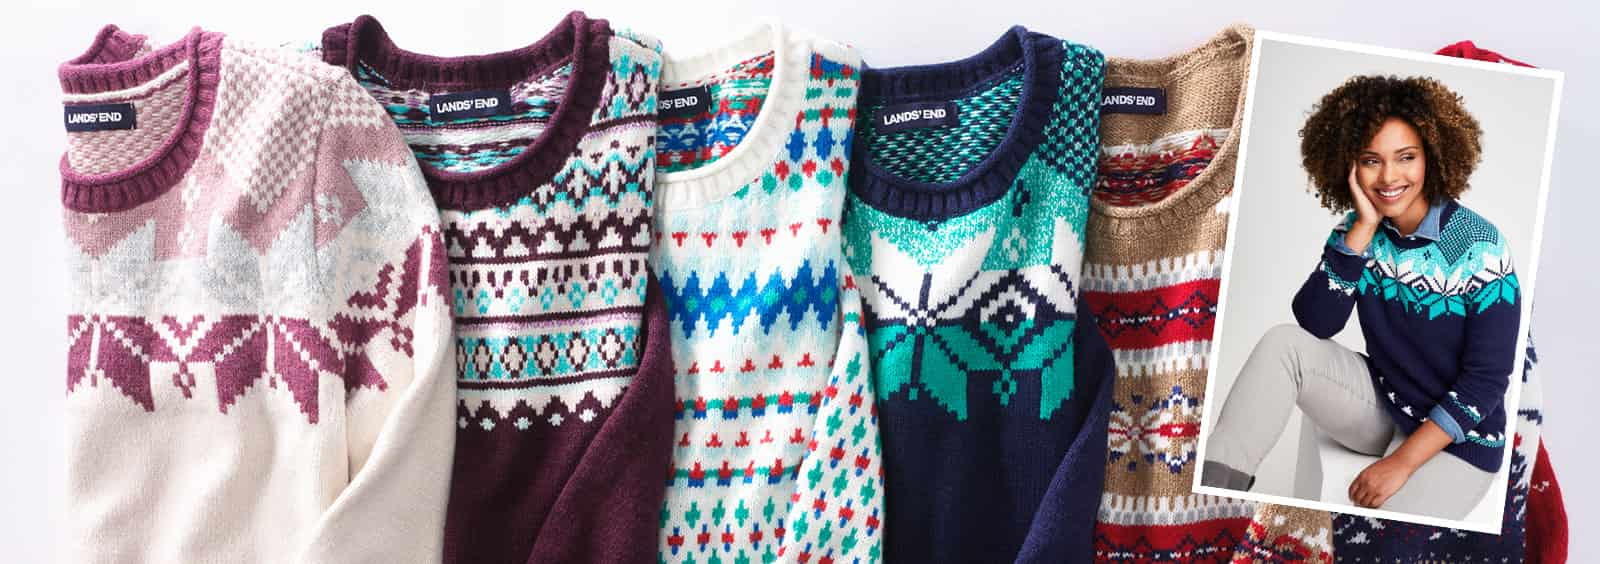 Top Festive Essentials for Your Holiday Wardrobe